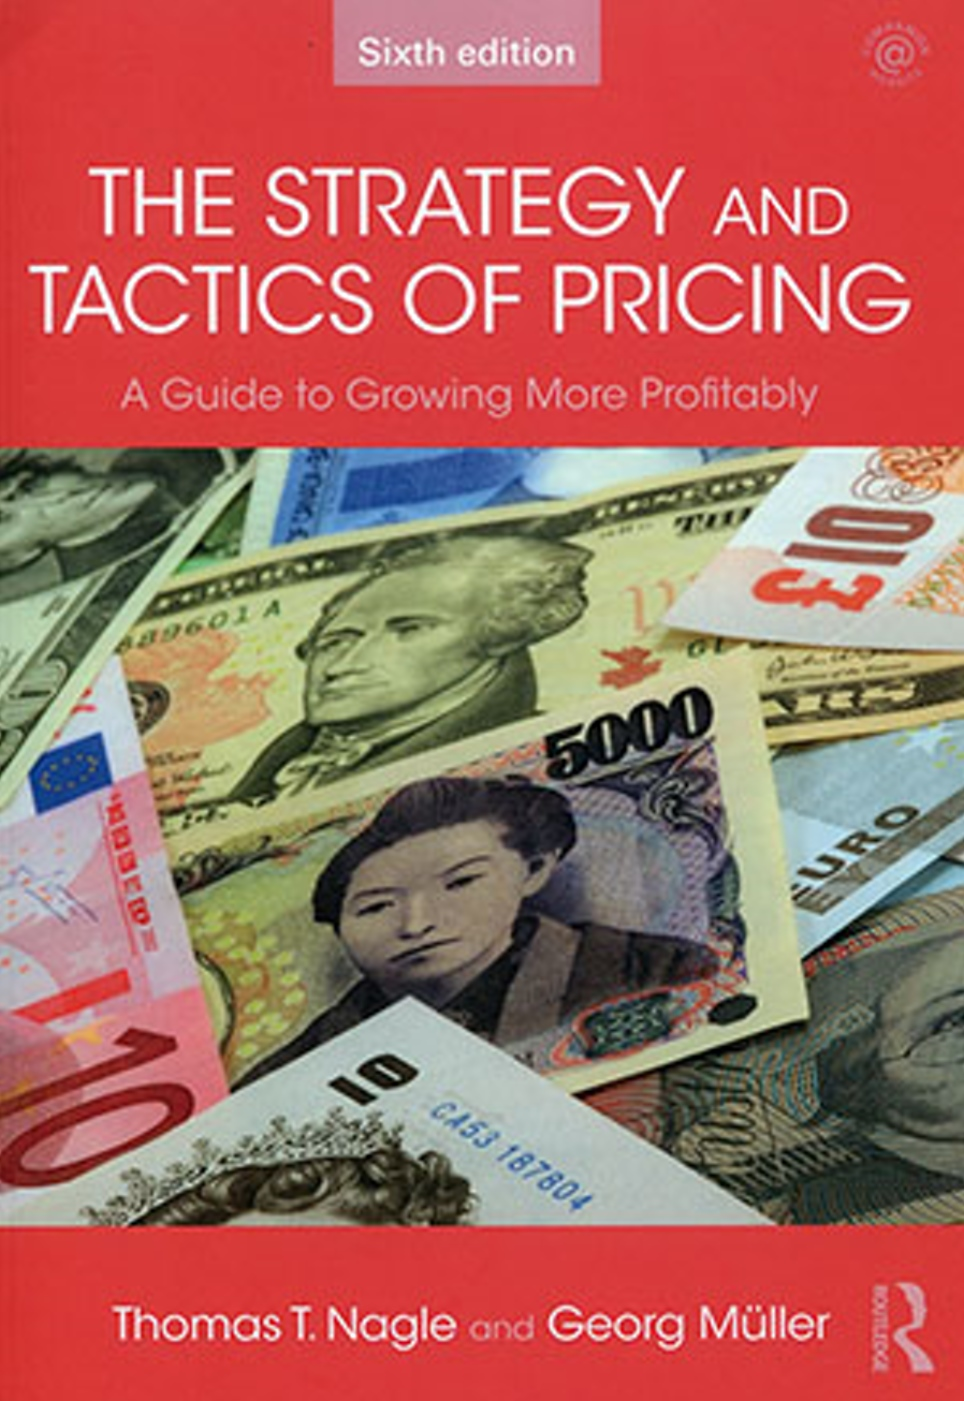 The Strategy and Tactics of Pricing: A Guide to Growing More Profitably(六版)